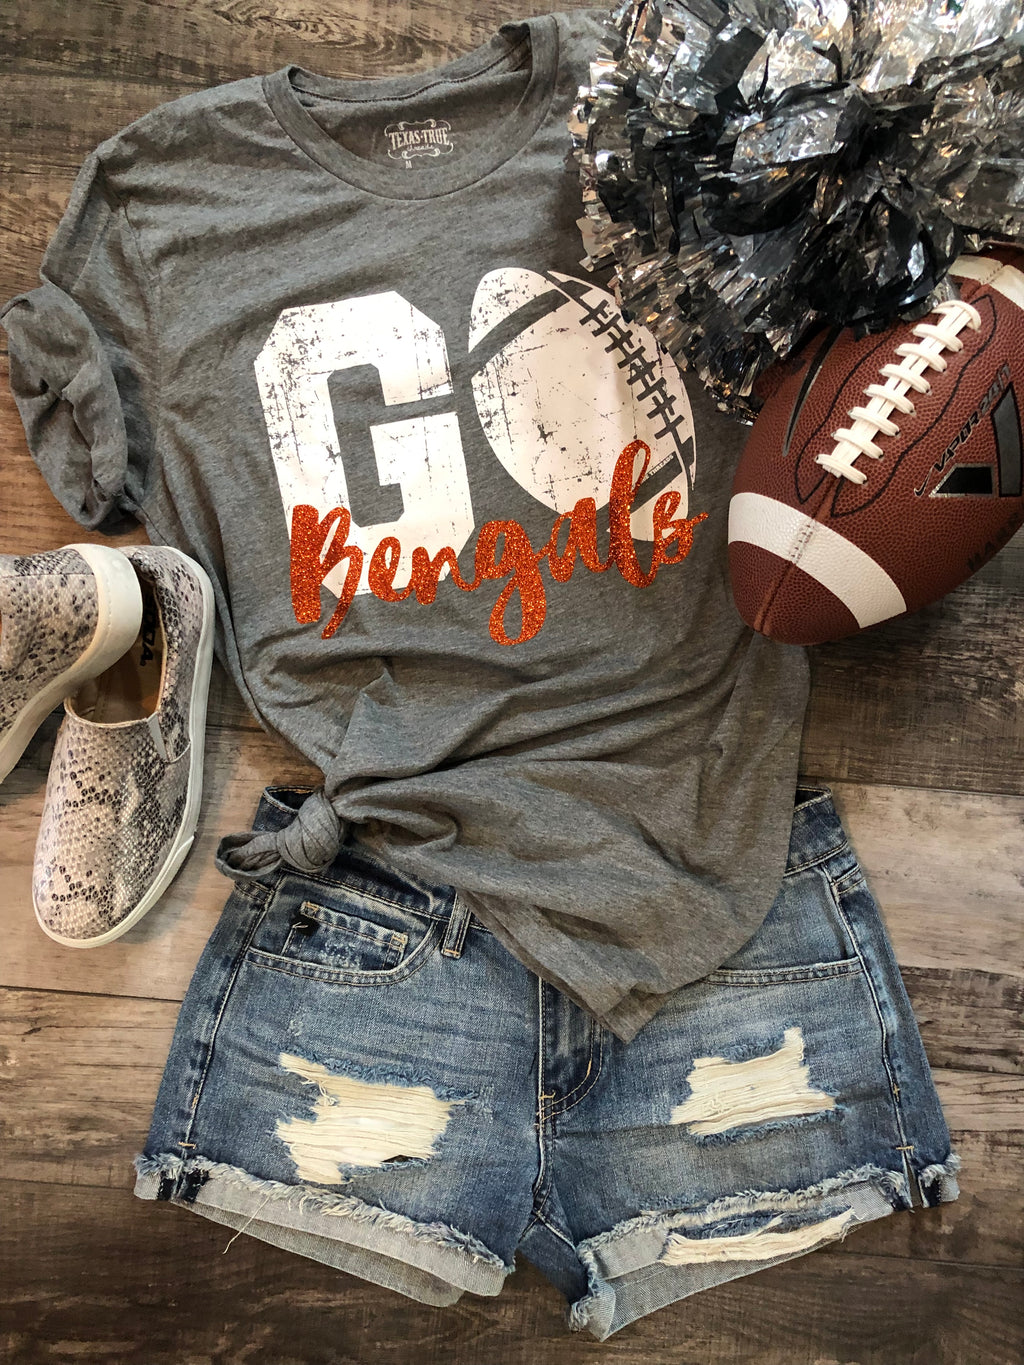 BENGALS grey/orange custom football tee